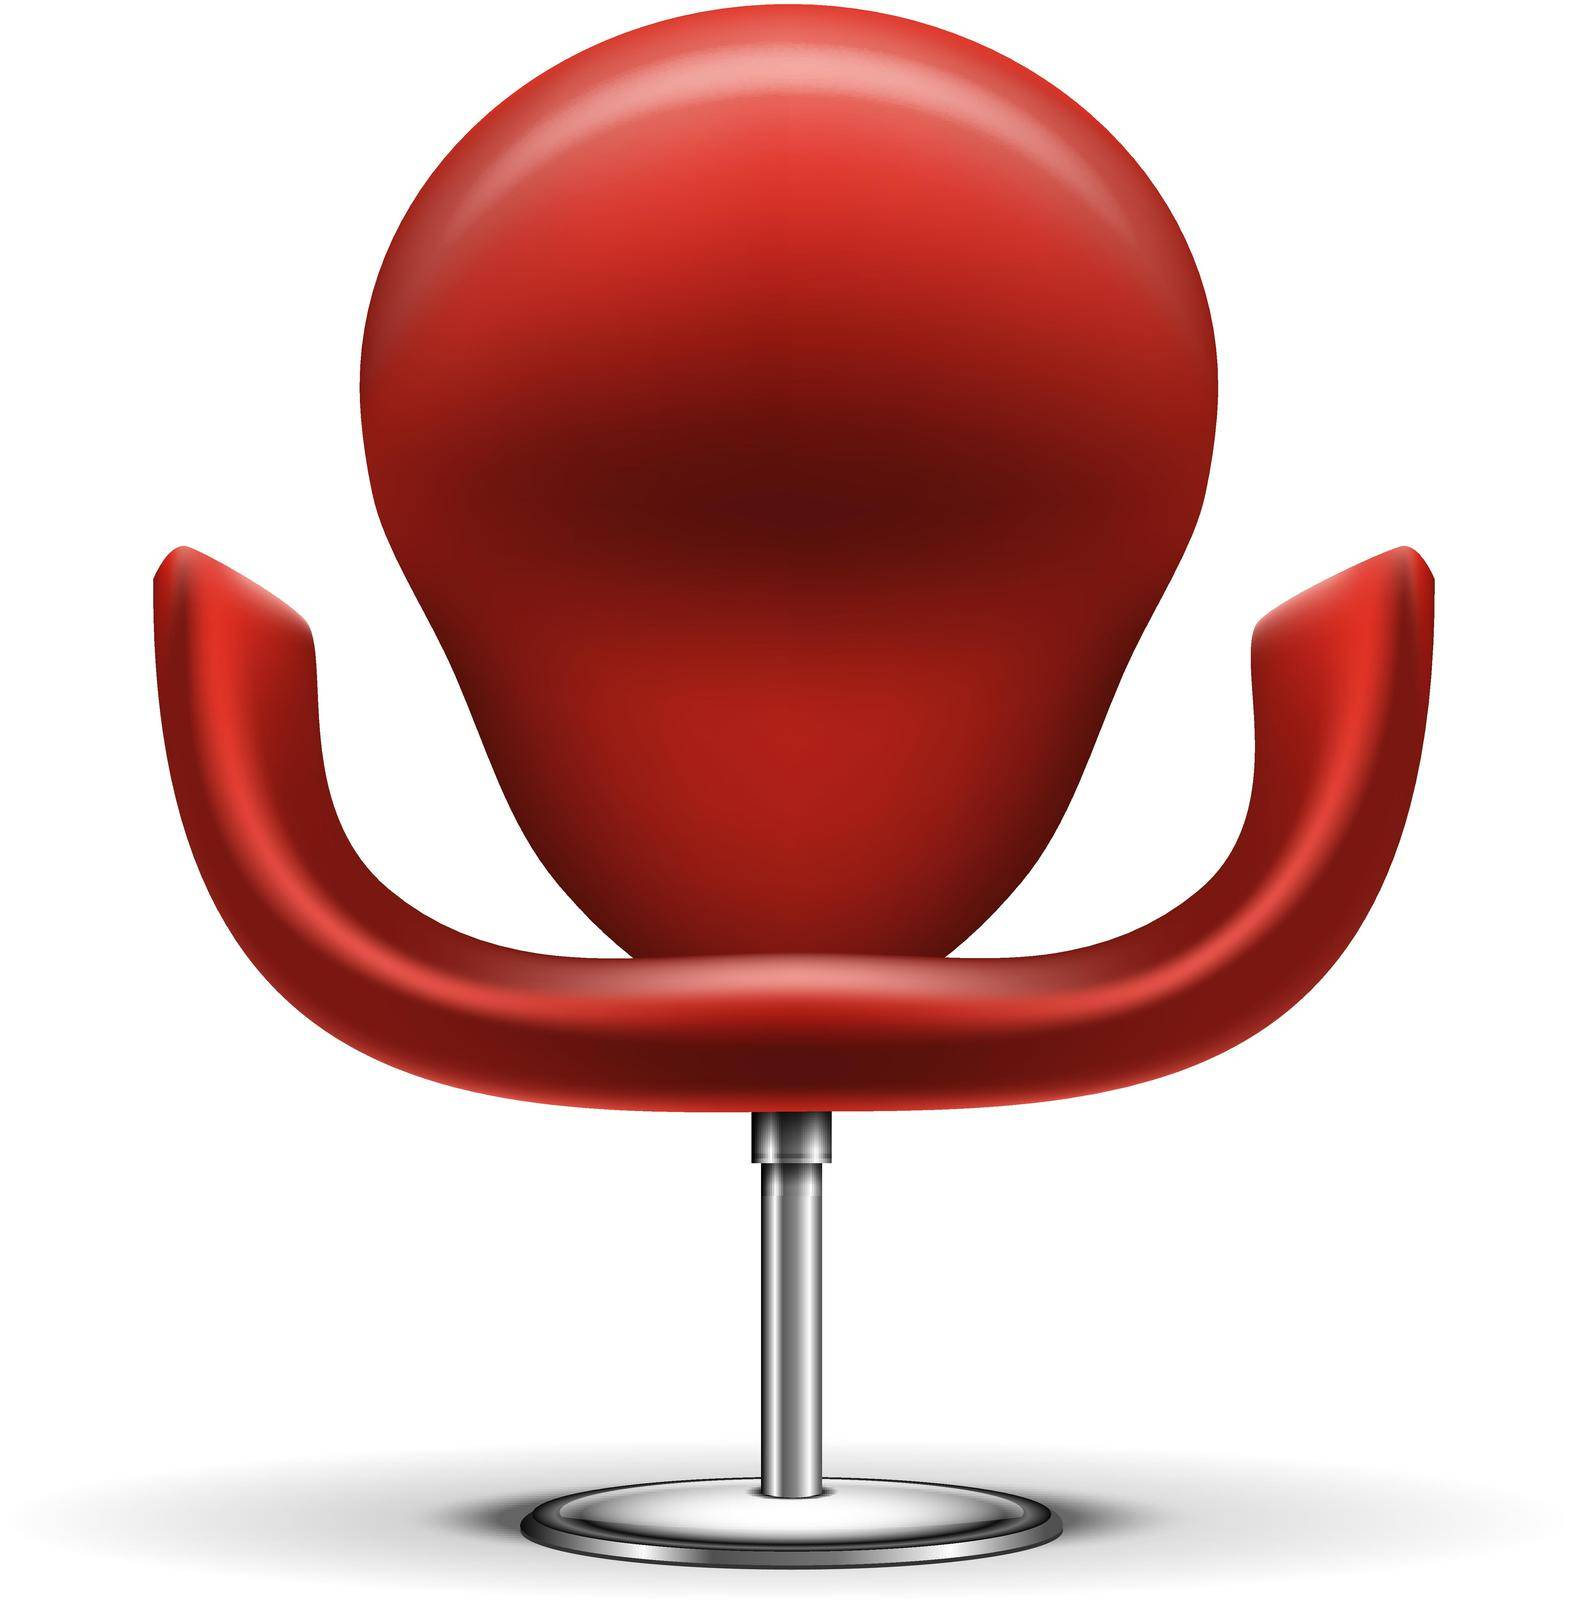 Red Modern chair isolated on white background. Editable EPS and Render in JPG format